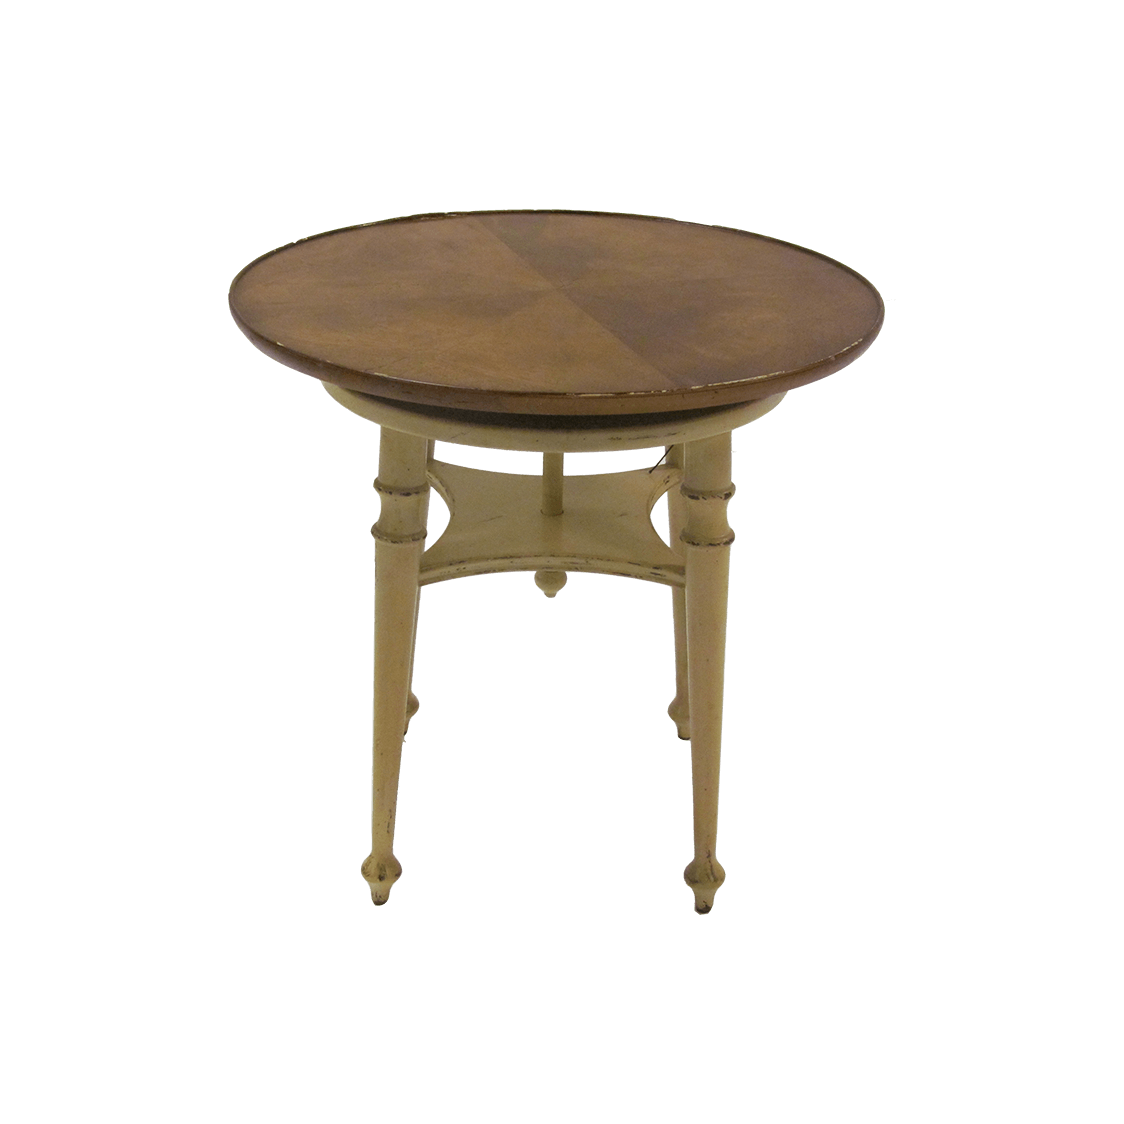 Baker Round Side Table - Roulette Twist